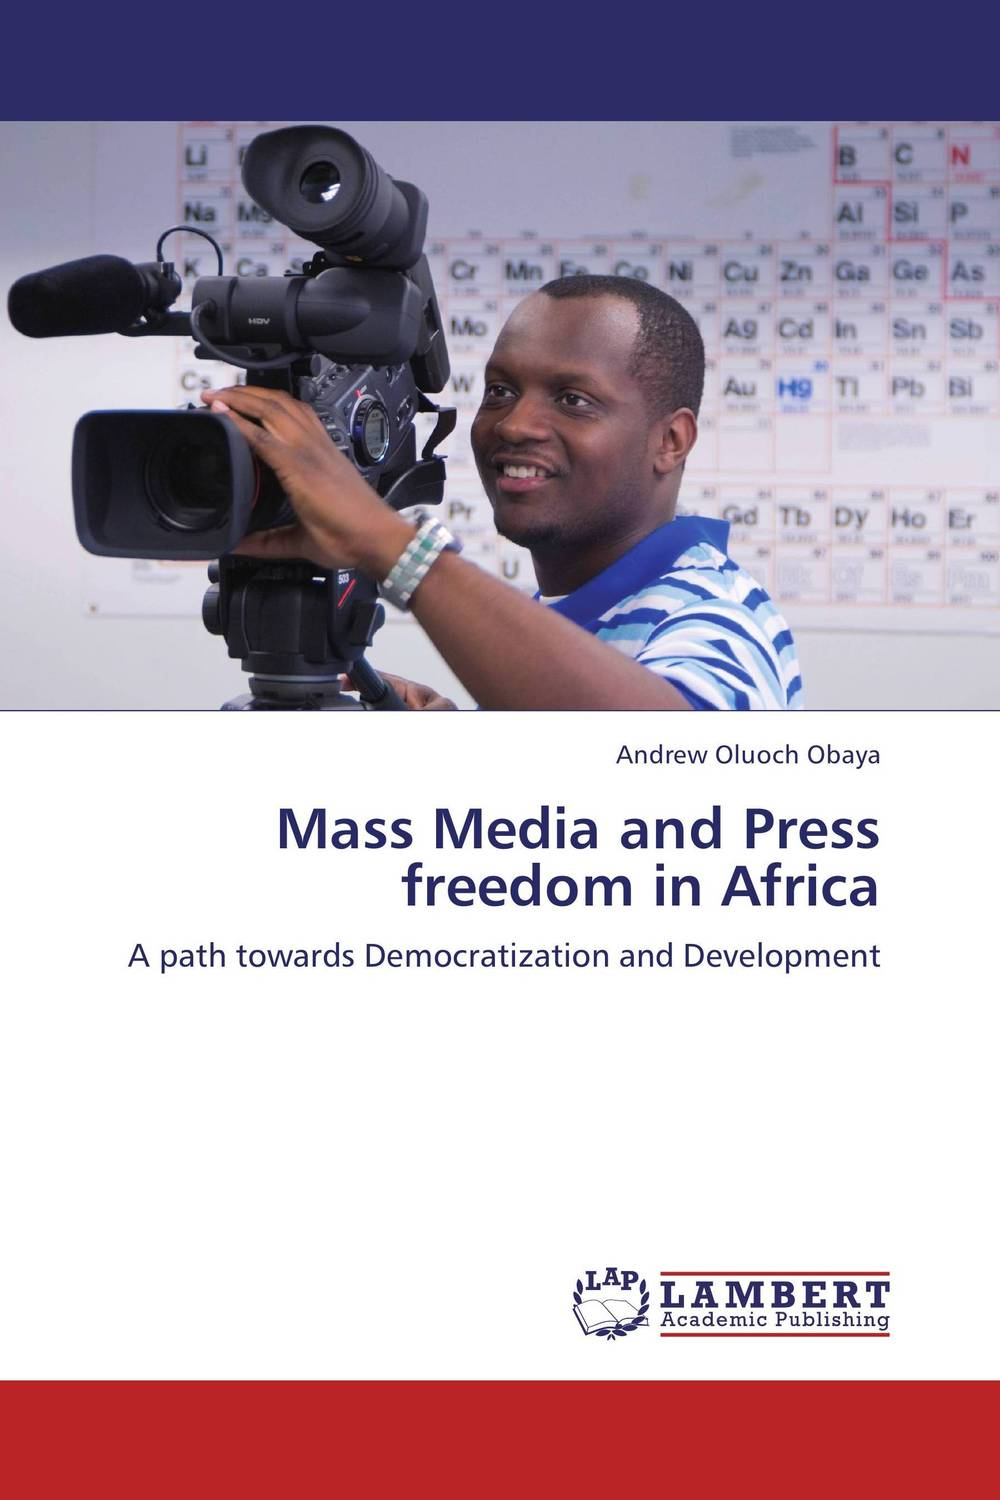 Mass Media and Press freedom in Africa mart laar the power of freedom